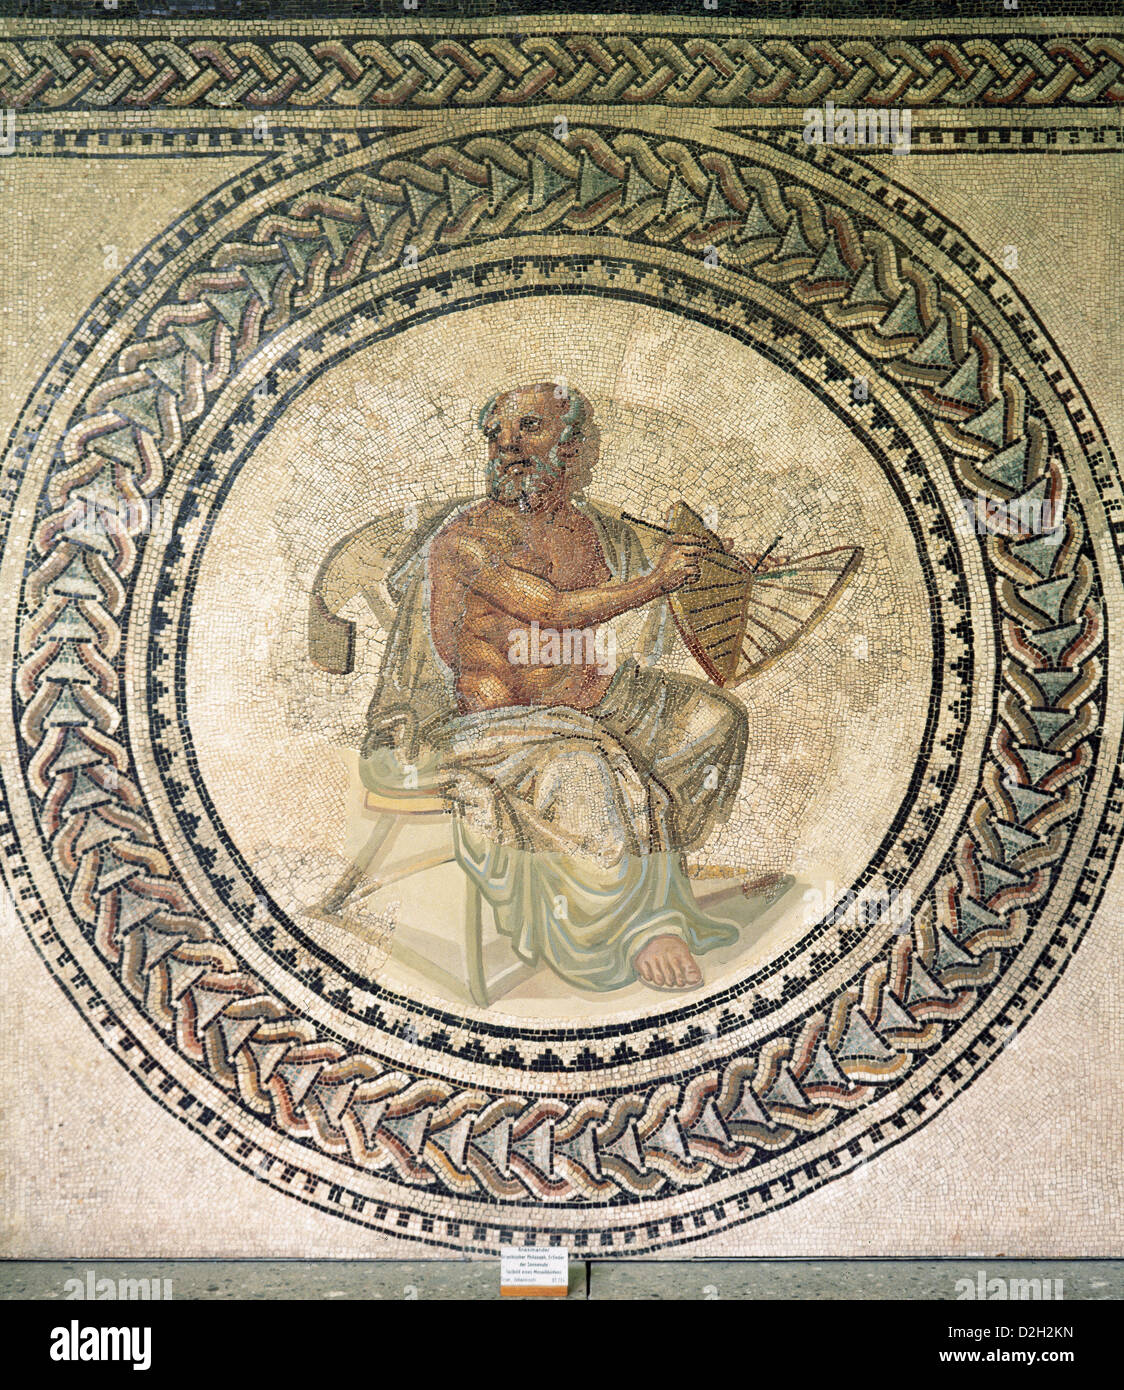 the real of the unreal world through the eyes of anaxamander of miletus Need writing most notable accomplishment essay use our paper writing services or get access to database of 9 free essays samples about most notable accomplishment.